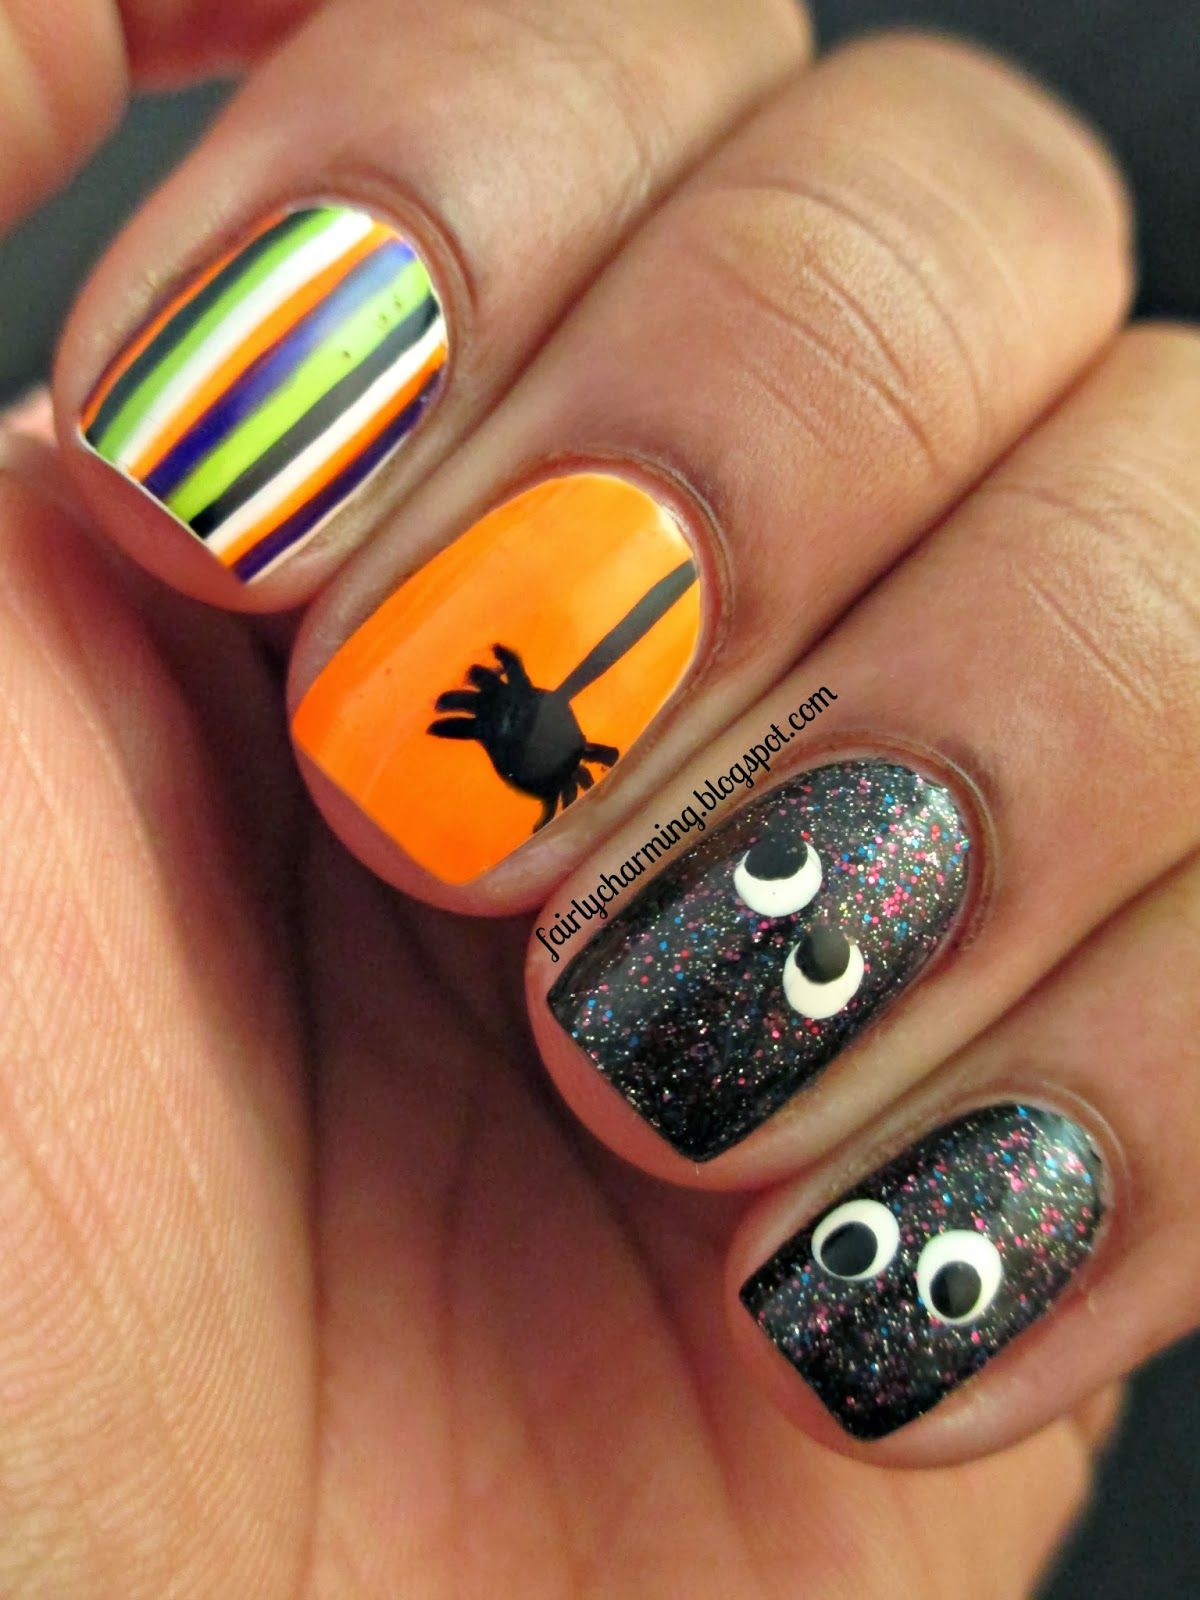 Pin by Amber Dale on NAILS!! | Pinterest | Nail nail, Makeup and ...